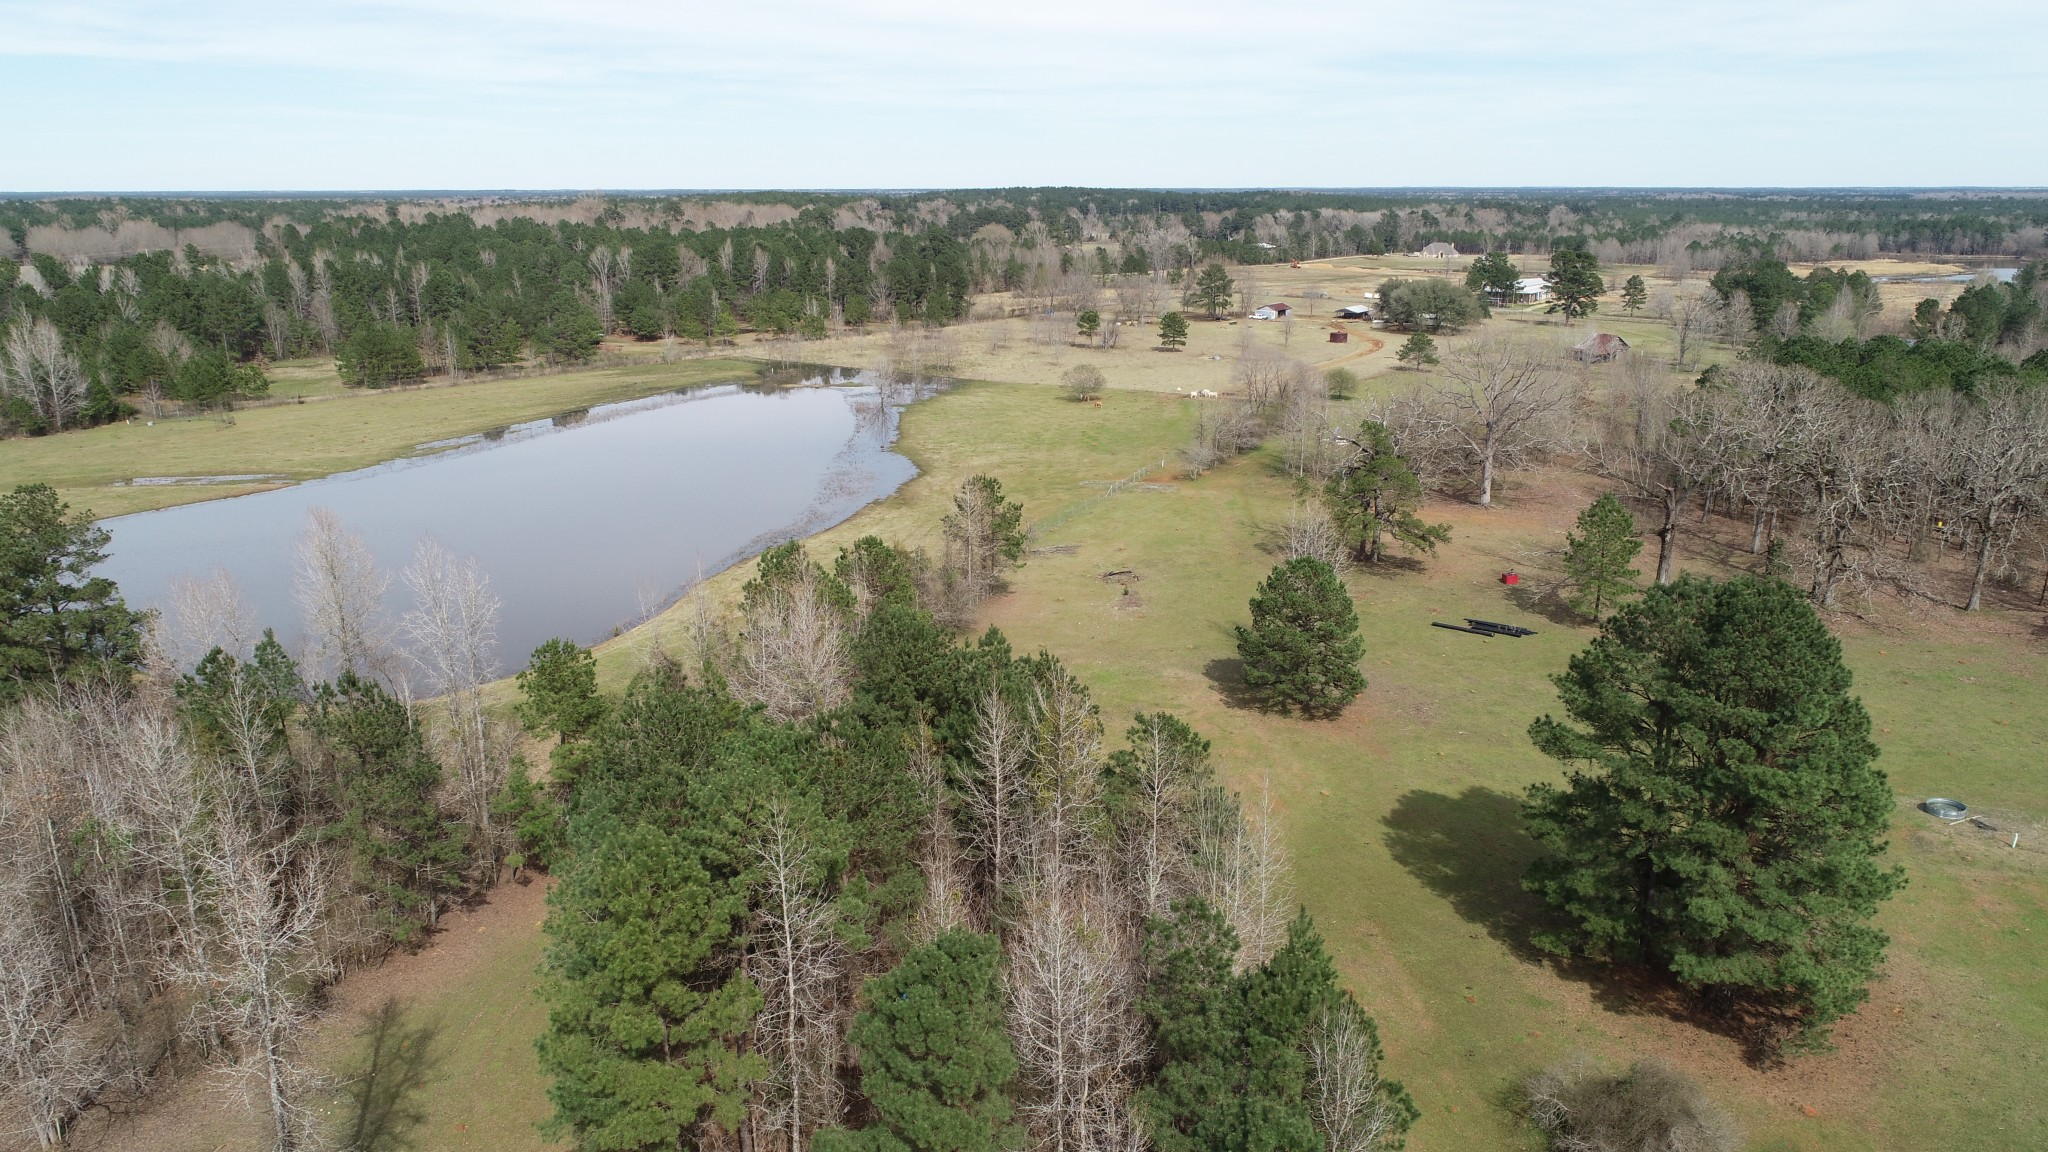 Dalrymple Pastures of Benton, Bossier Parish, 52 Acres +/-